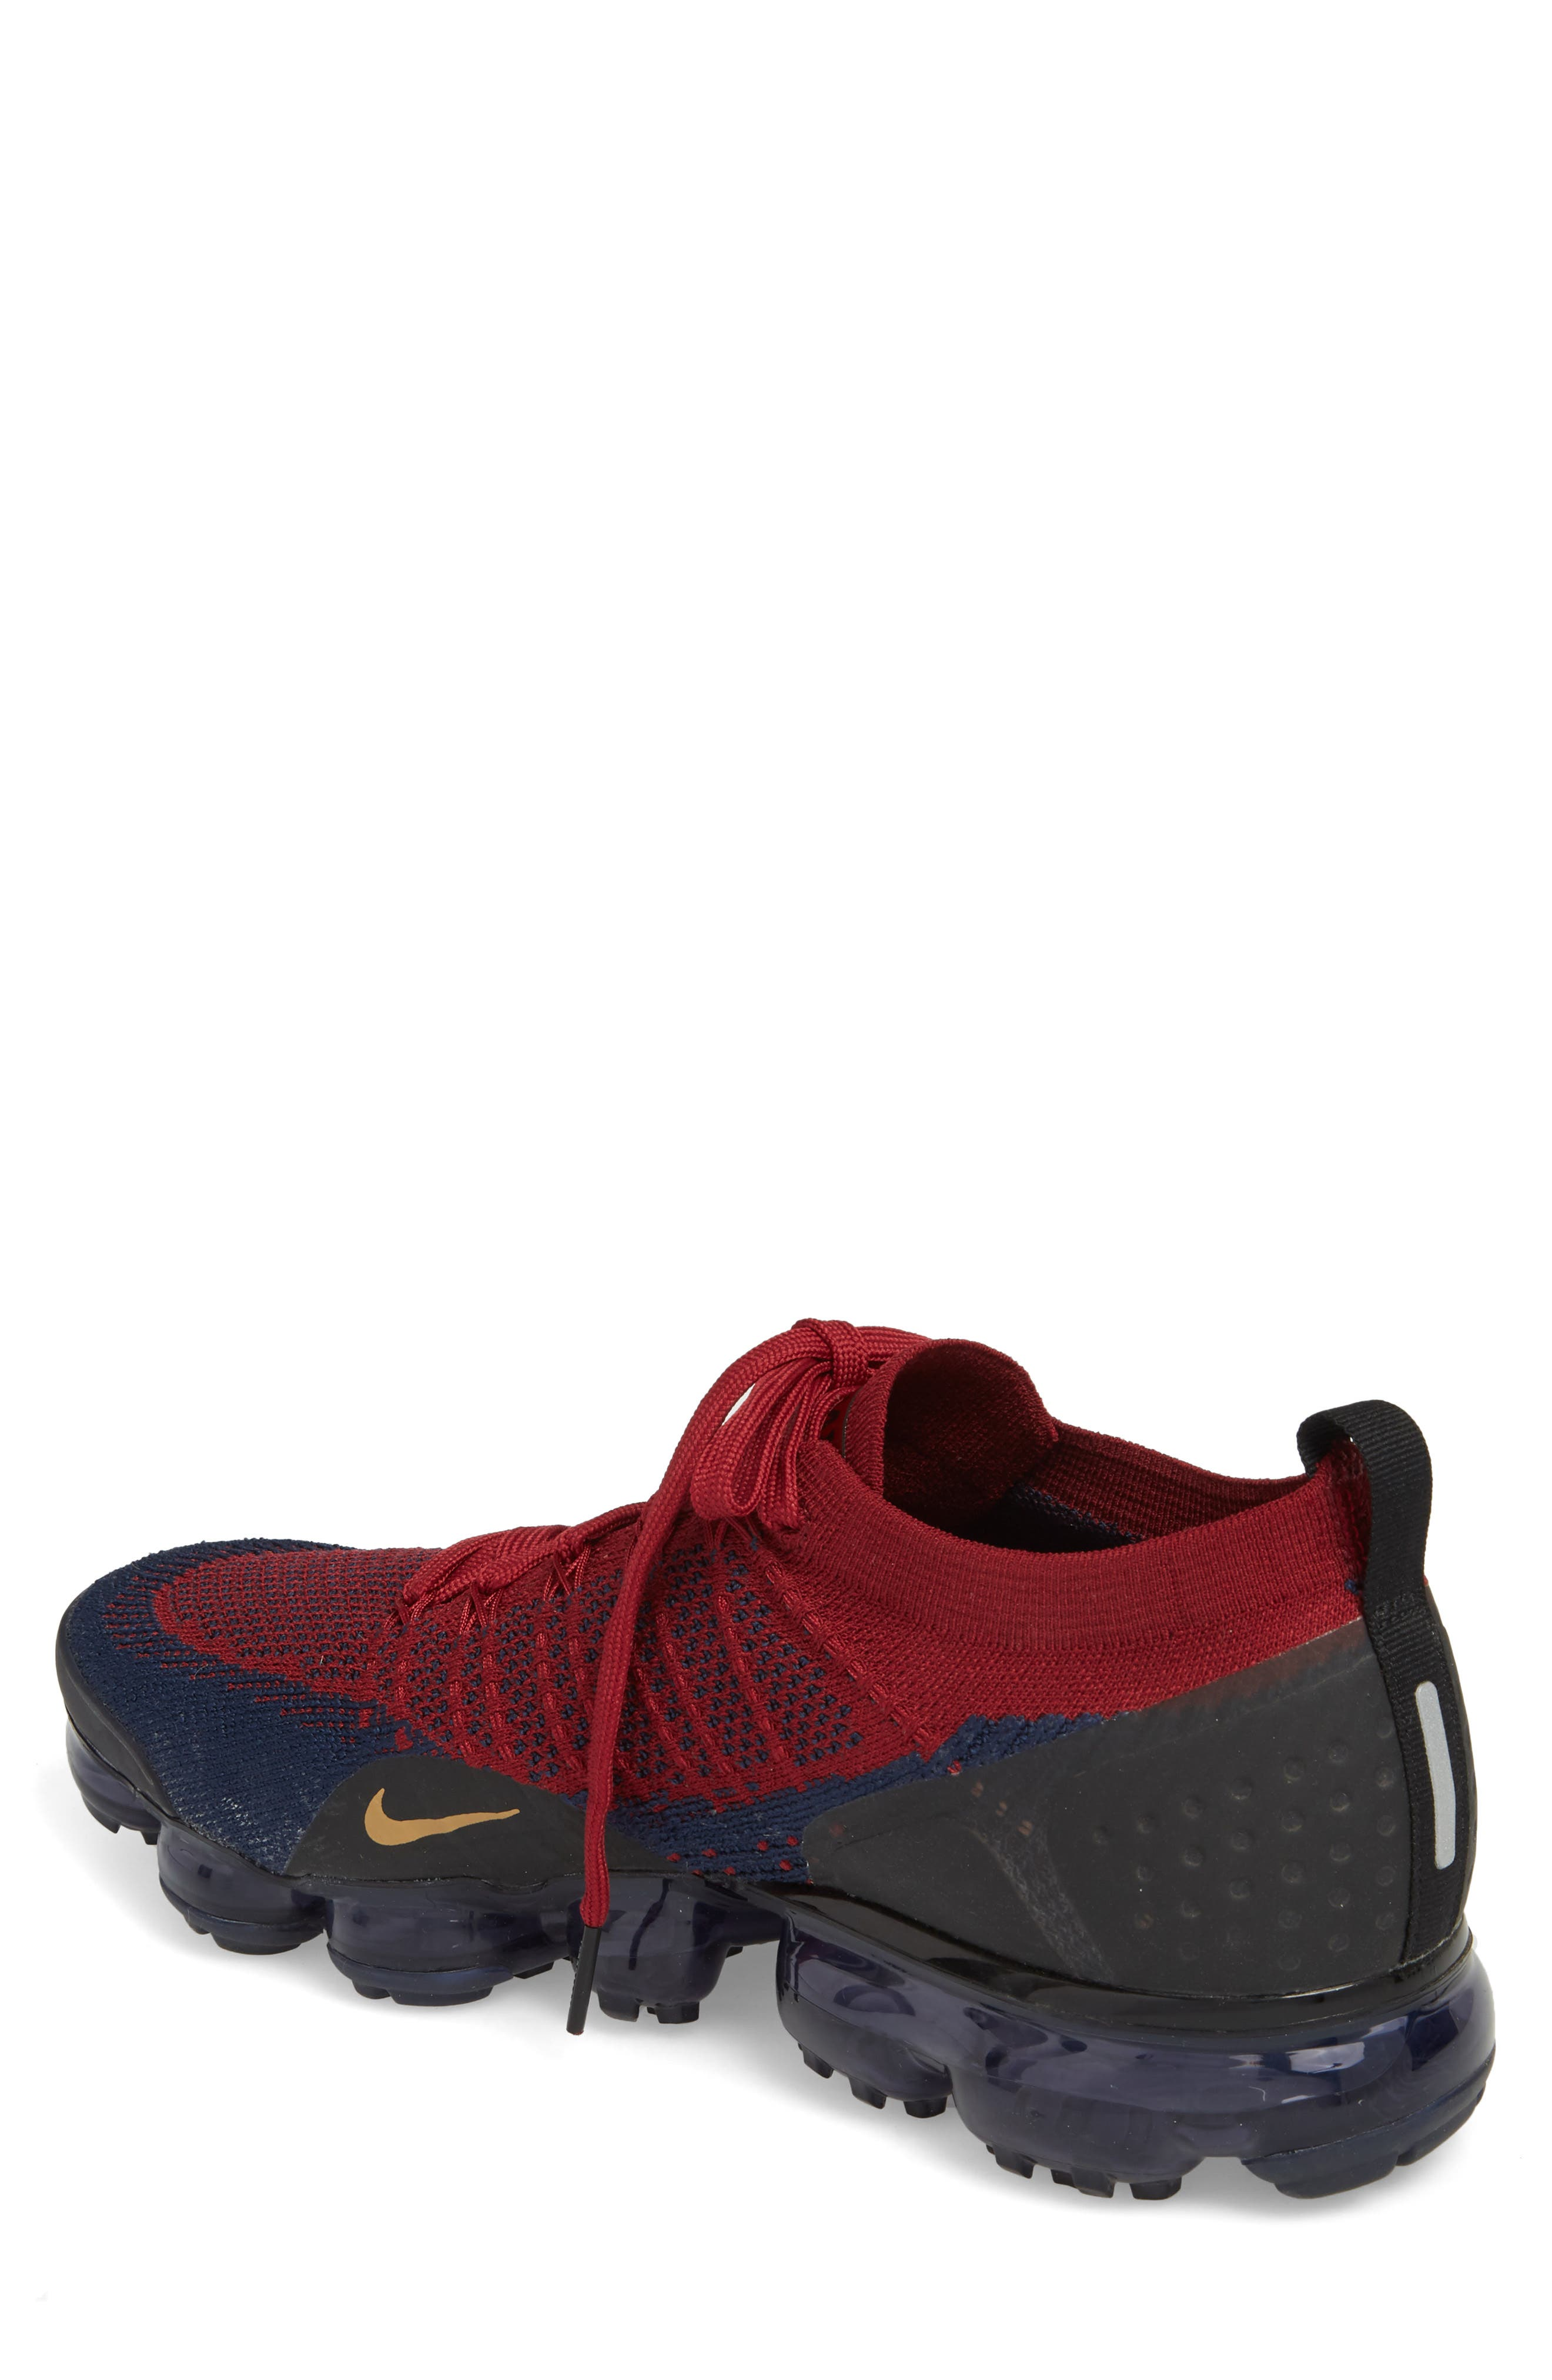 Air Vapormax Flyknit 2 Running Shoe,                             Alternate thumbnail 2, color,                             Team Red/ Wheat/ Obsidian